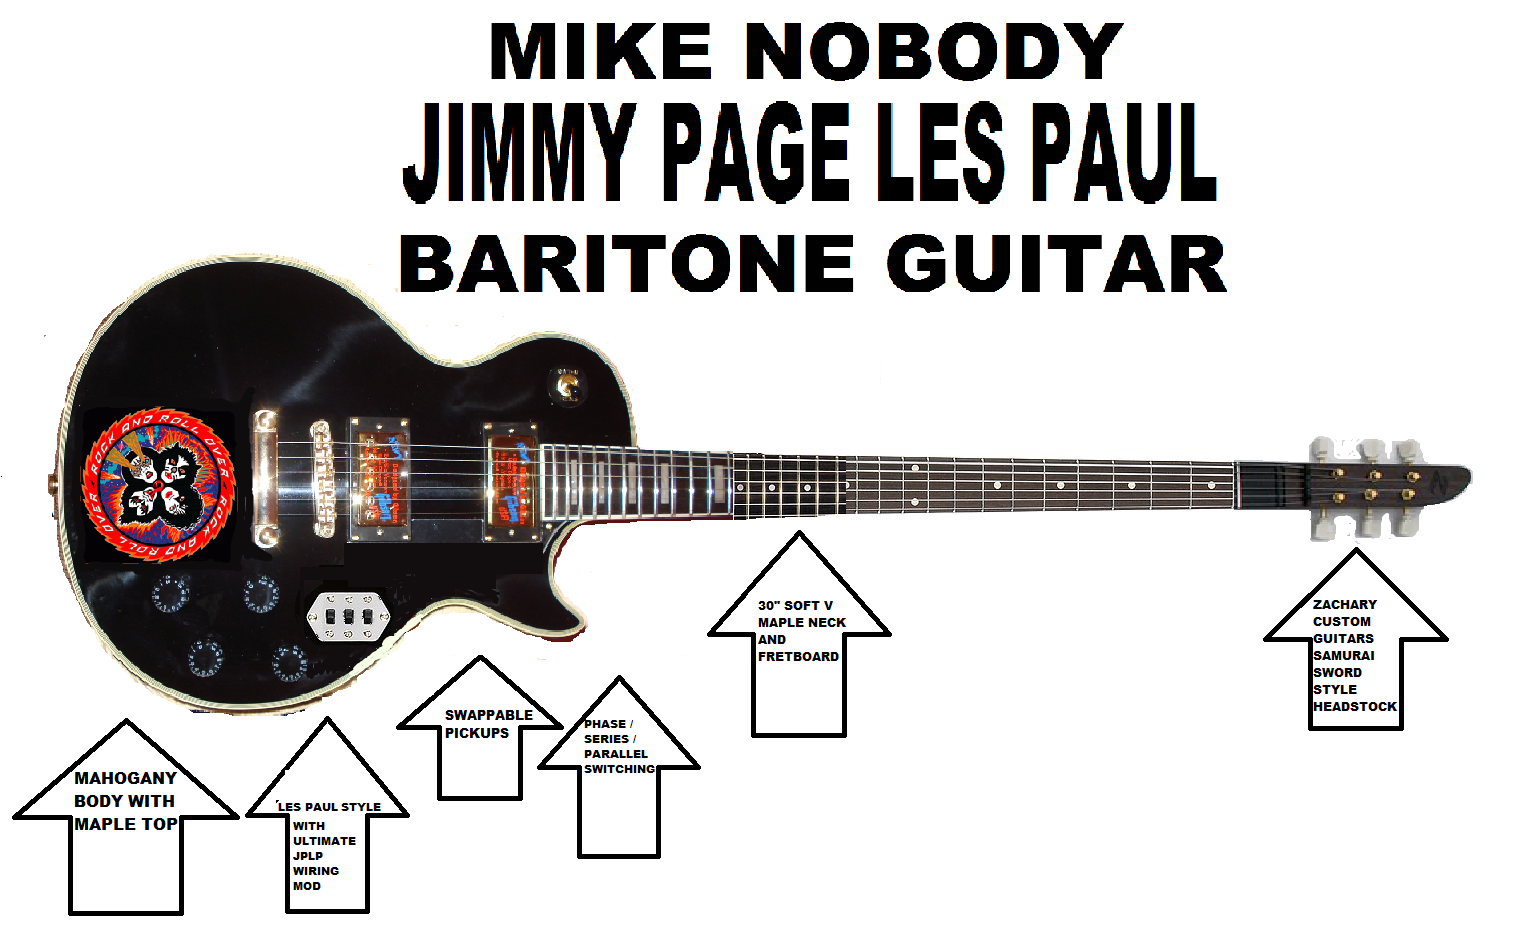 NegativeM+ Mike Nobody Jimmy Page Les Paul Baritone Guitar